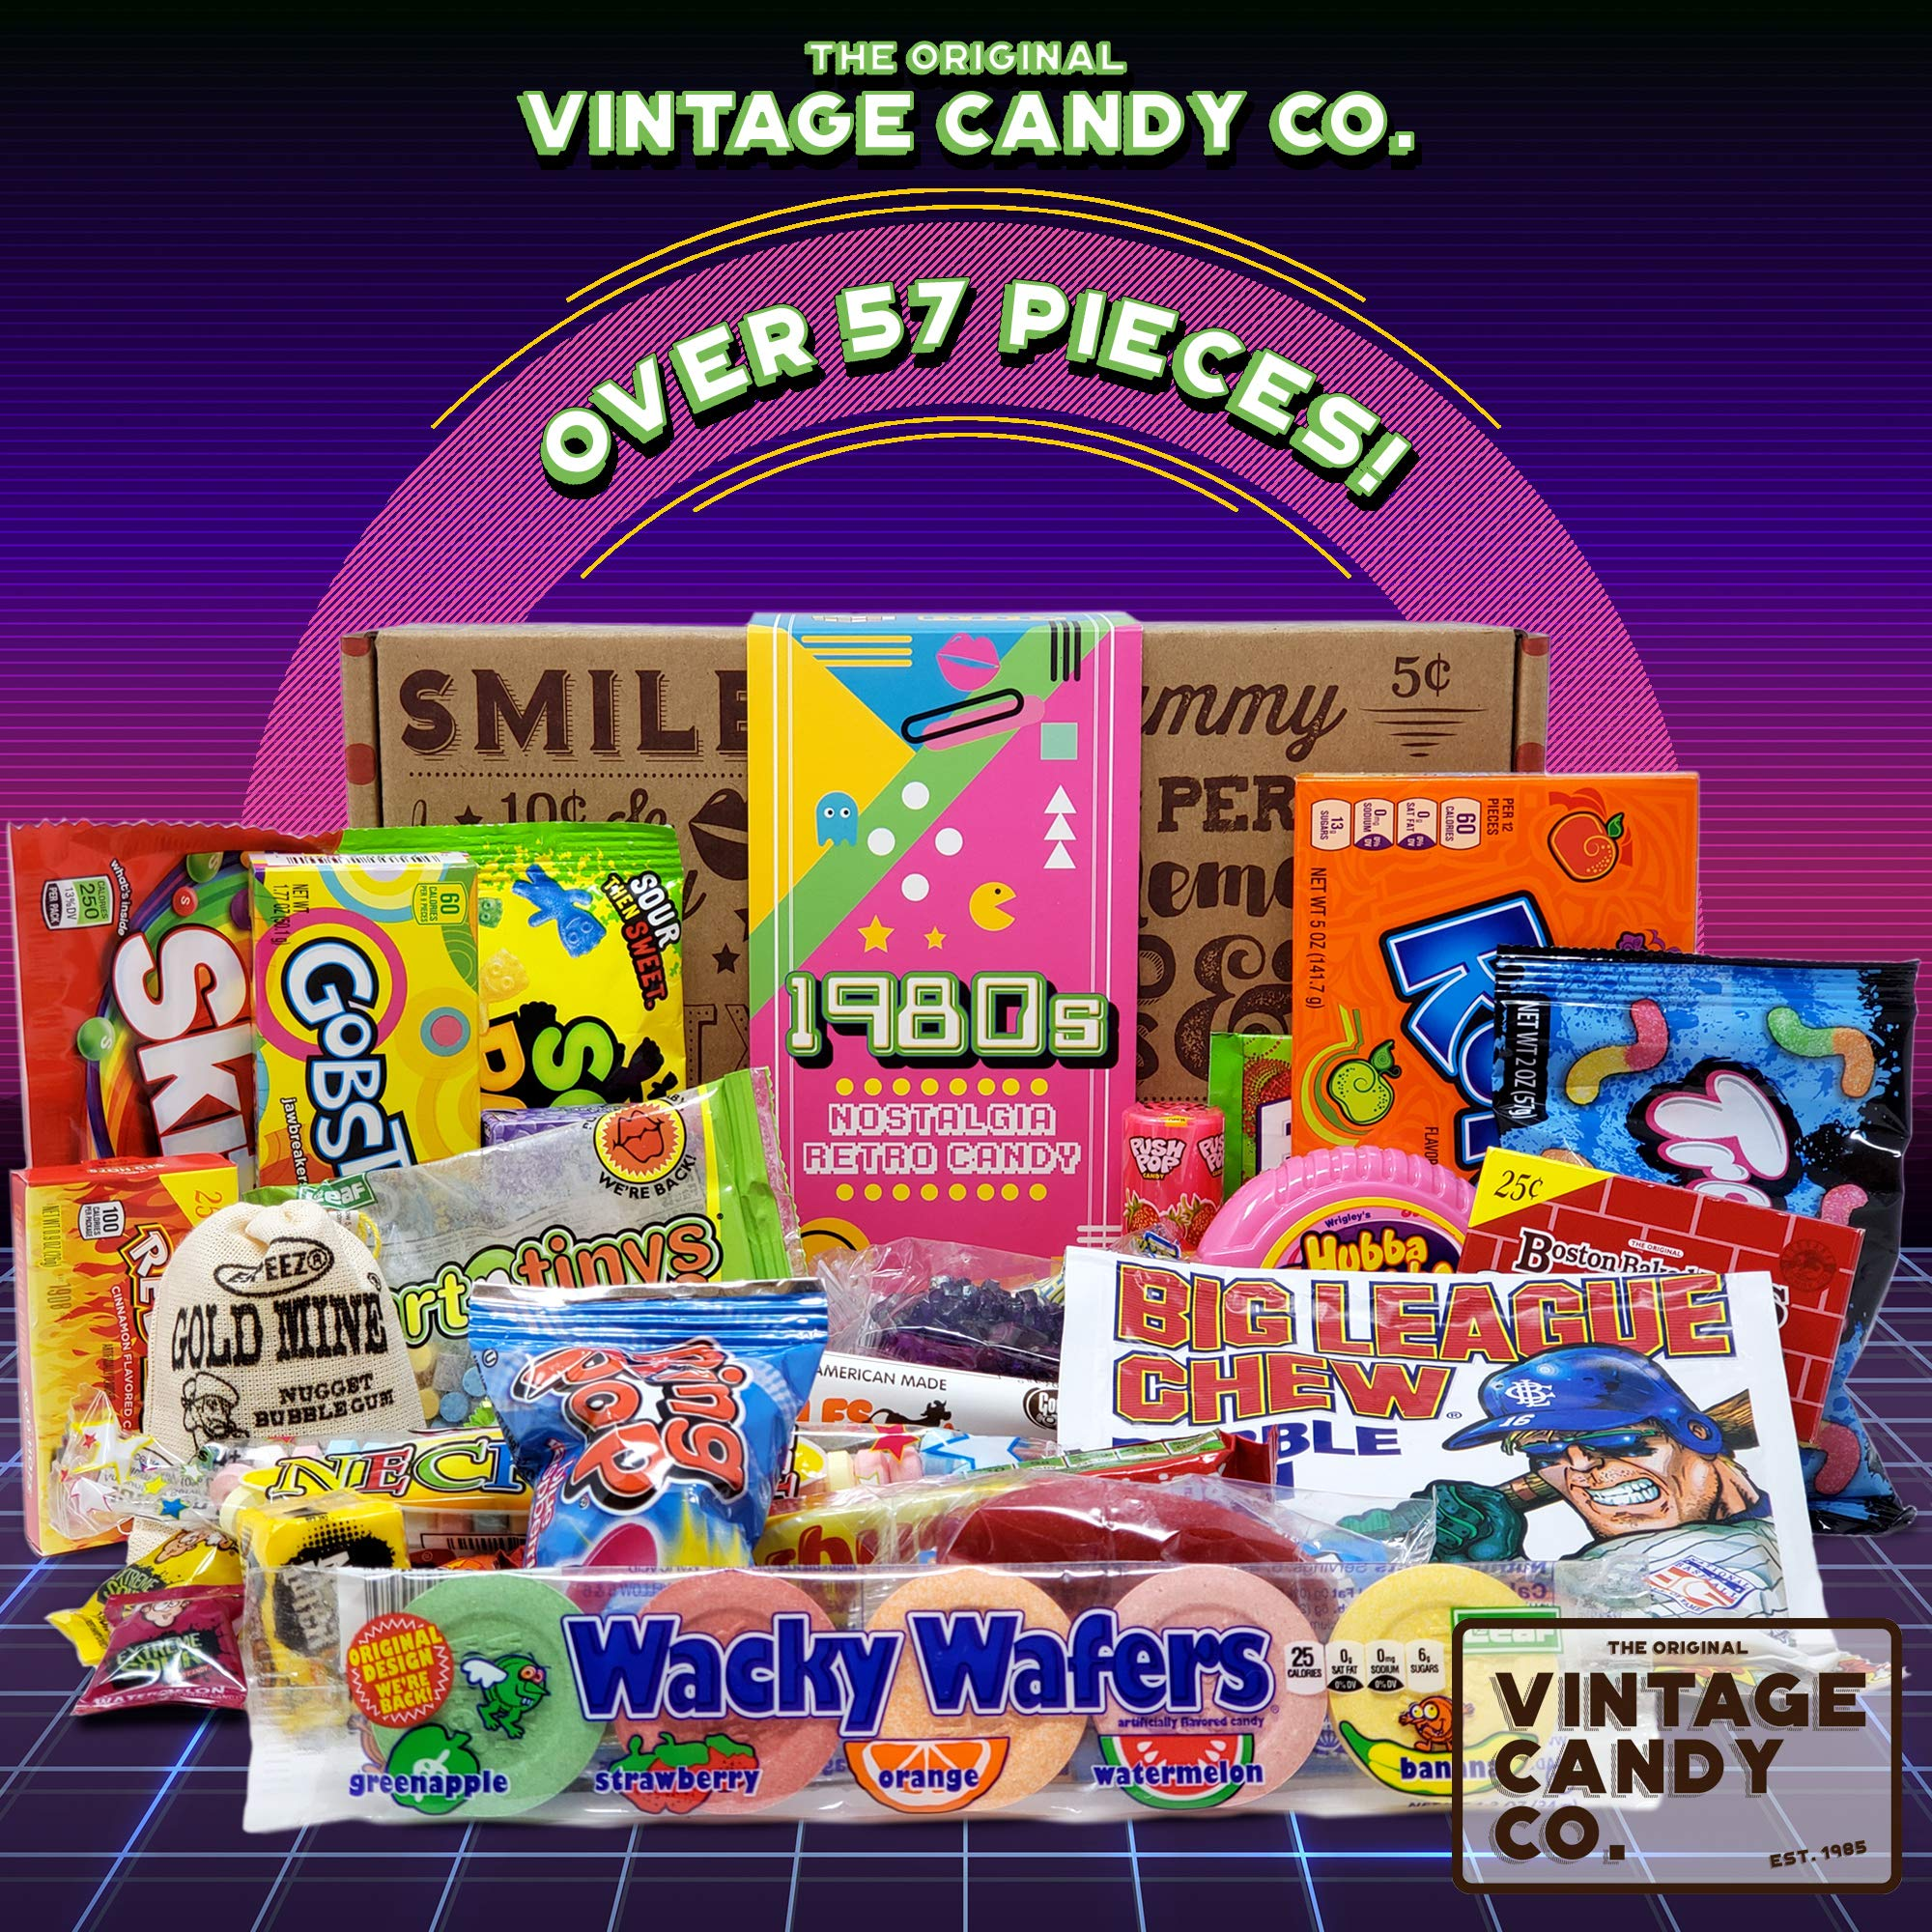 VINTAGE CANDY CO. 1980's RETRO CANDY GIFT BOX - 80s Nostalgia Candies - Flashback EIGHTIES Fun Gag Gift Basket - PERFECT '80s Candies For Adults, College Students, Men or Women, Kids, Teens by Vintage Candy Co. (Image #2)